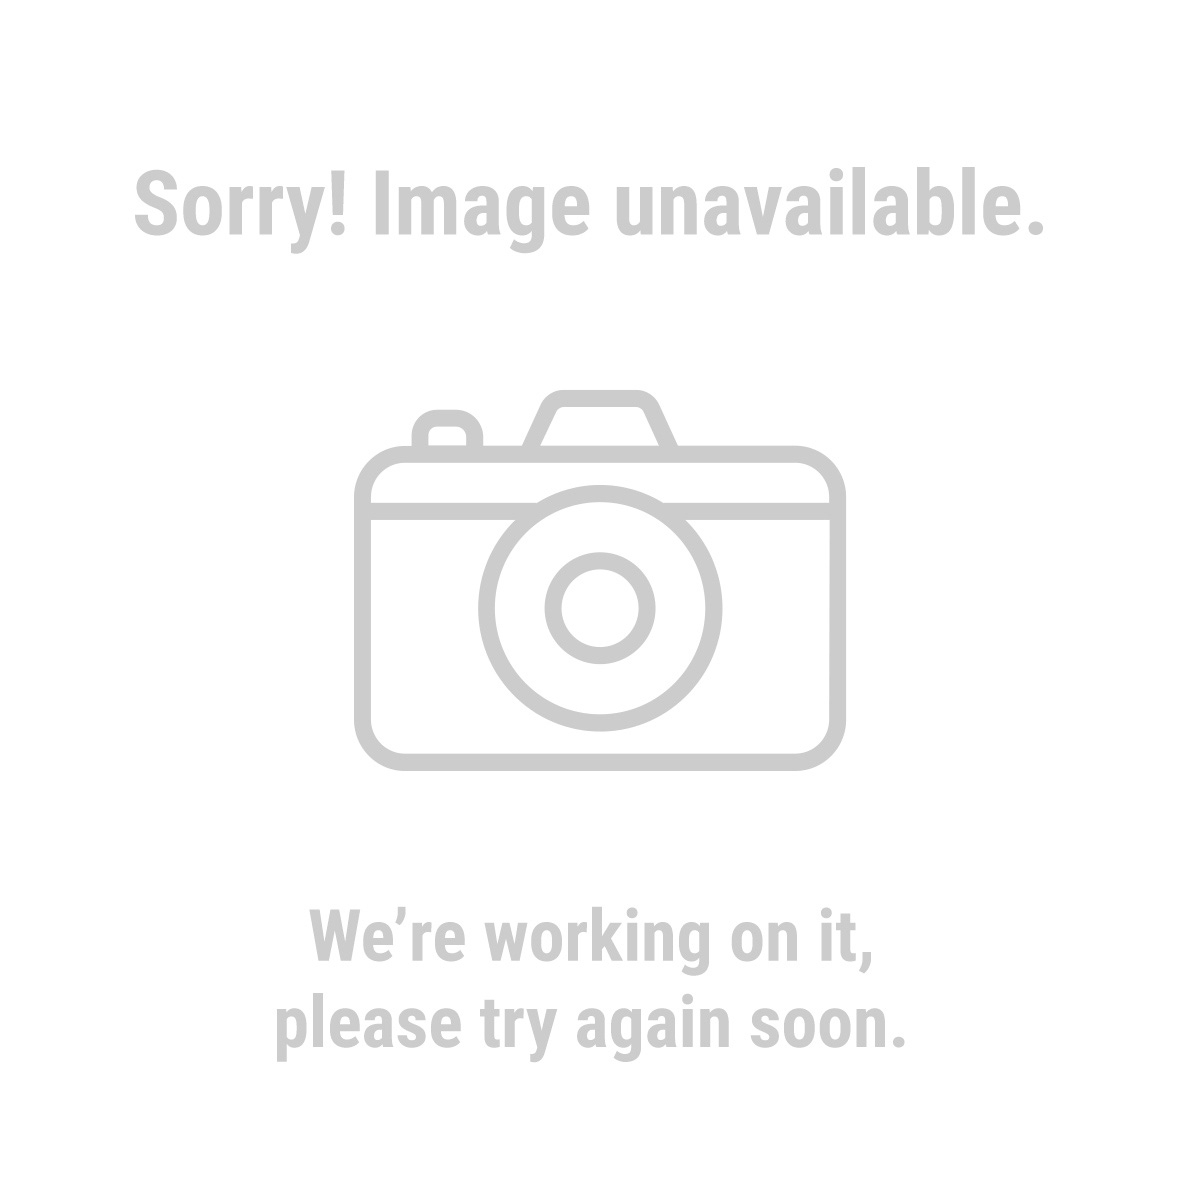 DAVRIC 67722 Magnum-16000 Auto Ramp Set with Built-In Safety Chock